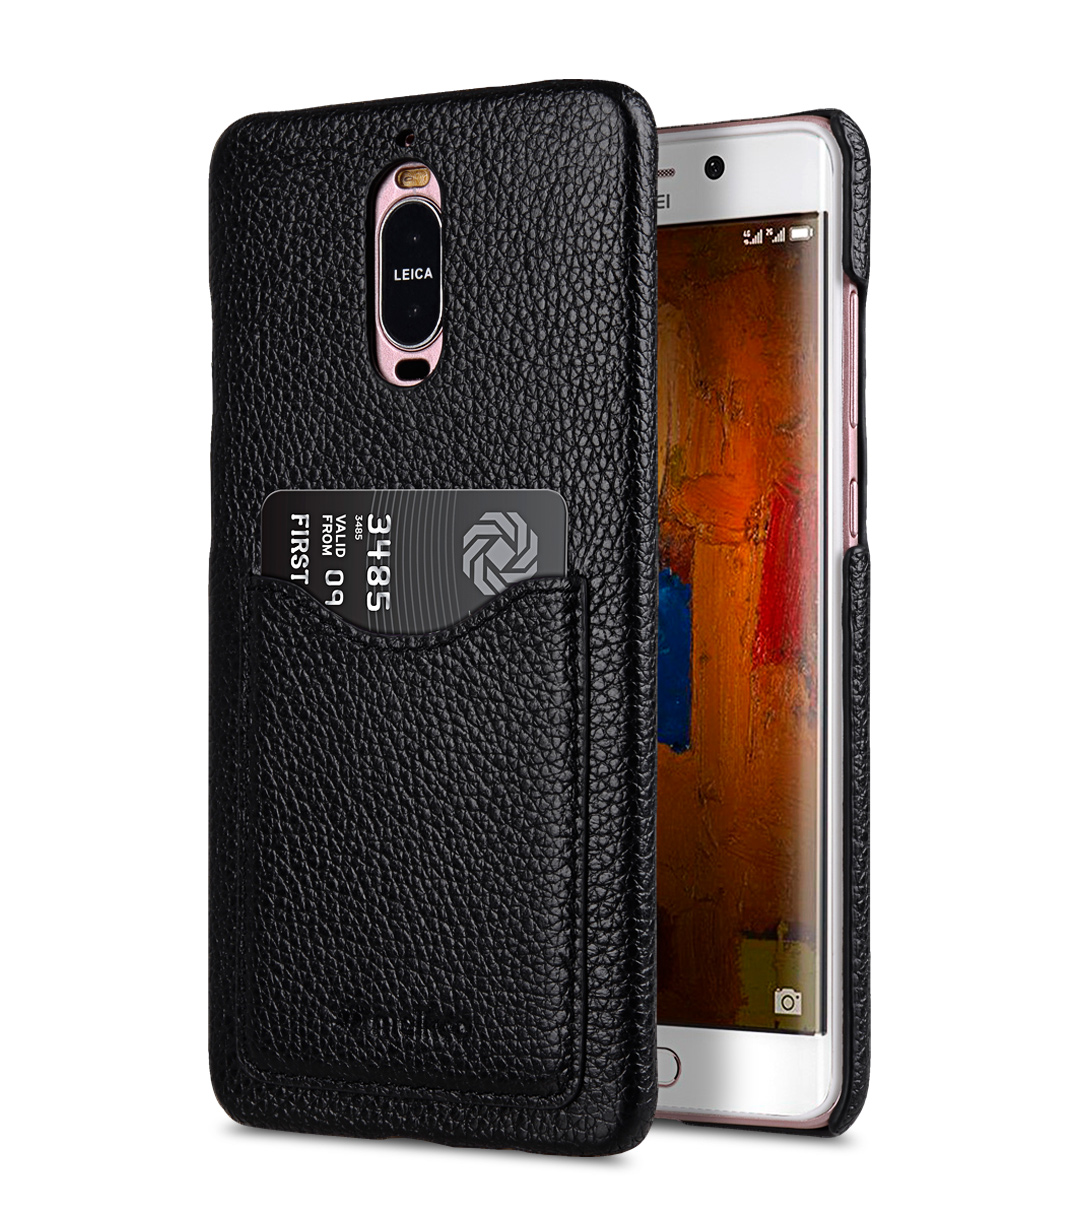 huawei mate 9 pro case mobile cases cellphone case genuine leather case huawei mate 9 pro. Black Bedroom Furniture Sets. Home Design Ideas